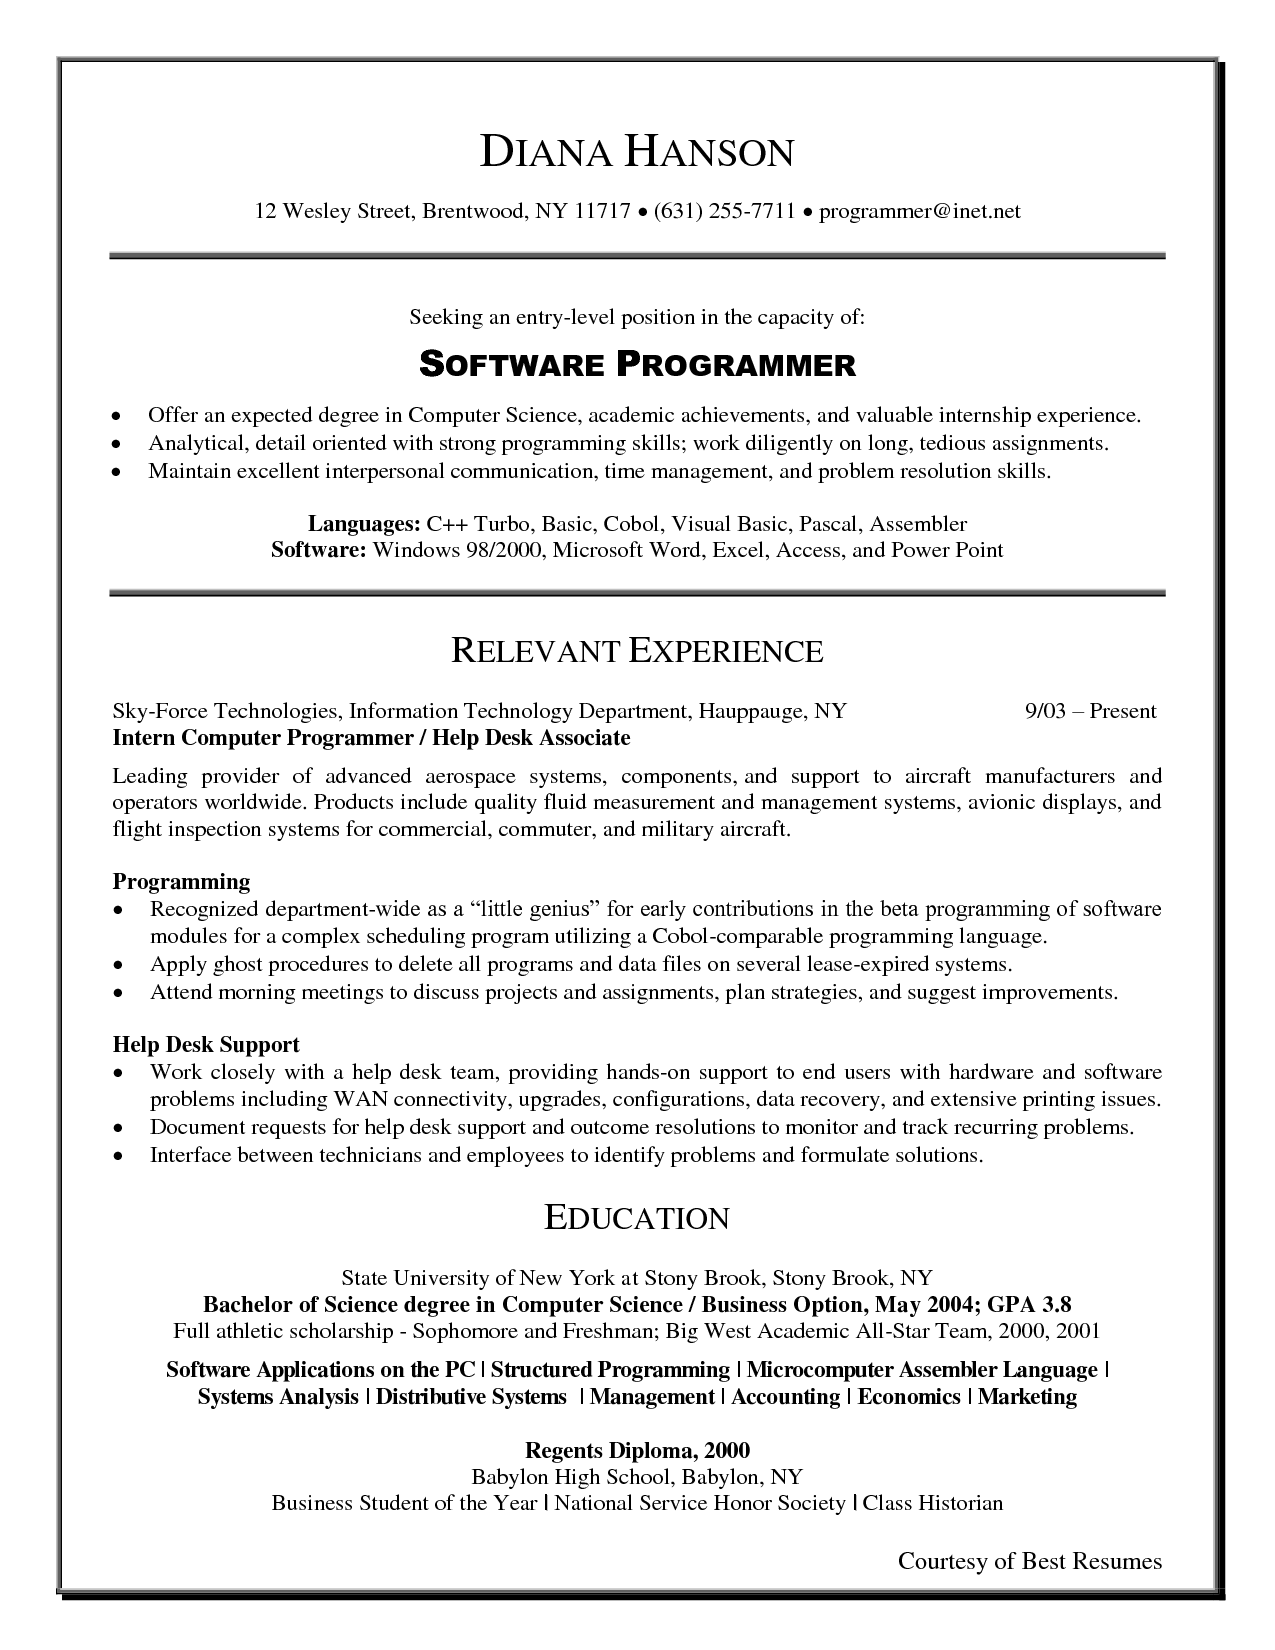 marketing internship resume samples photos resume sample example of a resume acting resume sample